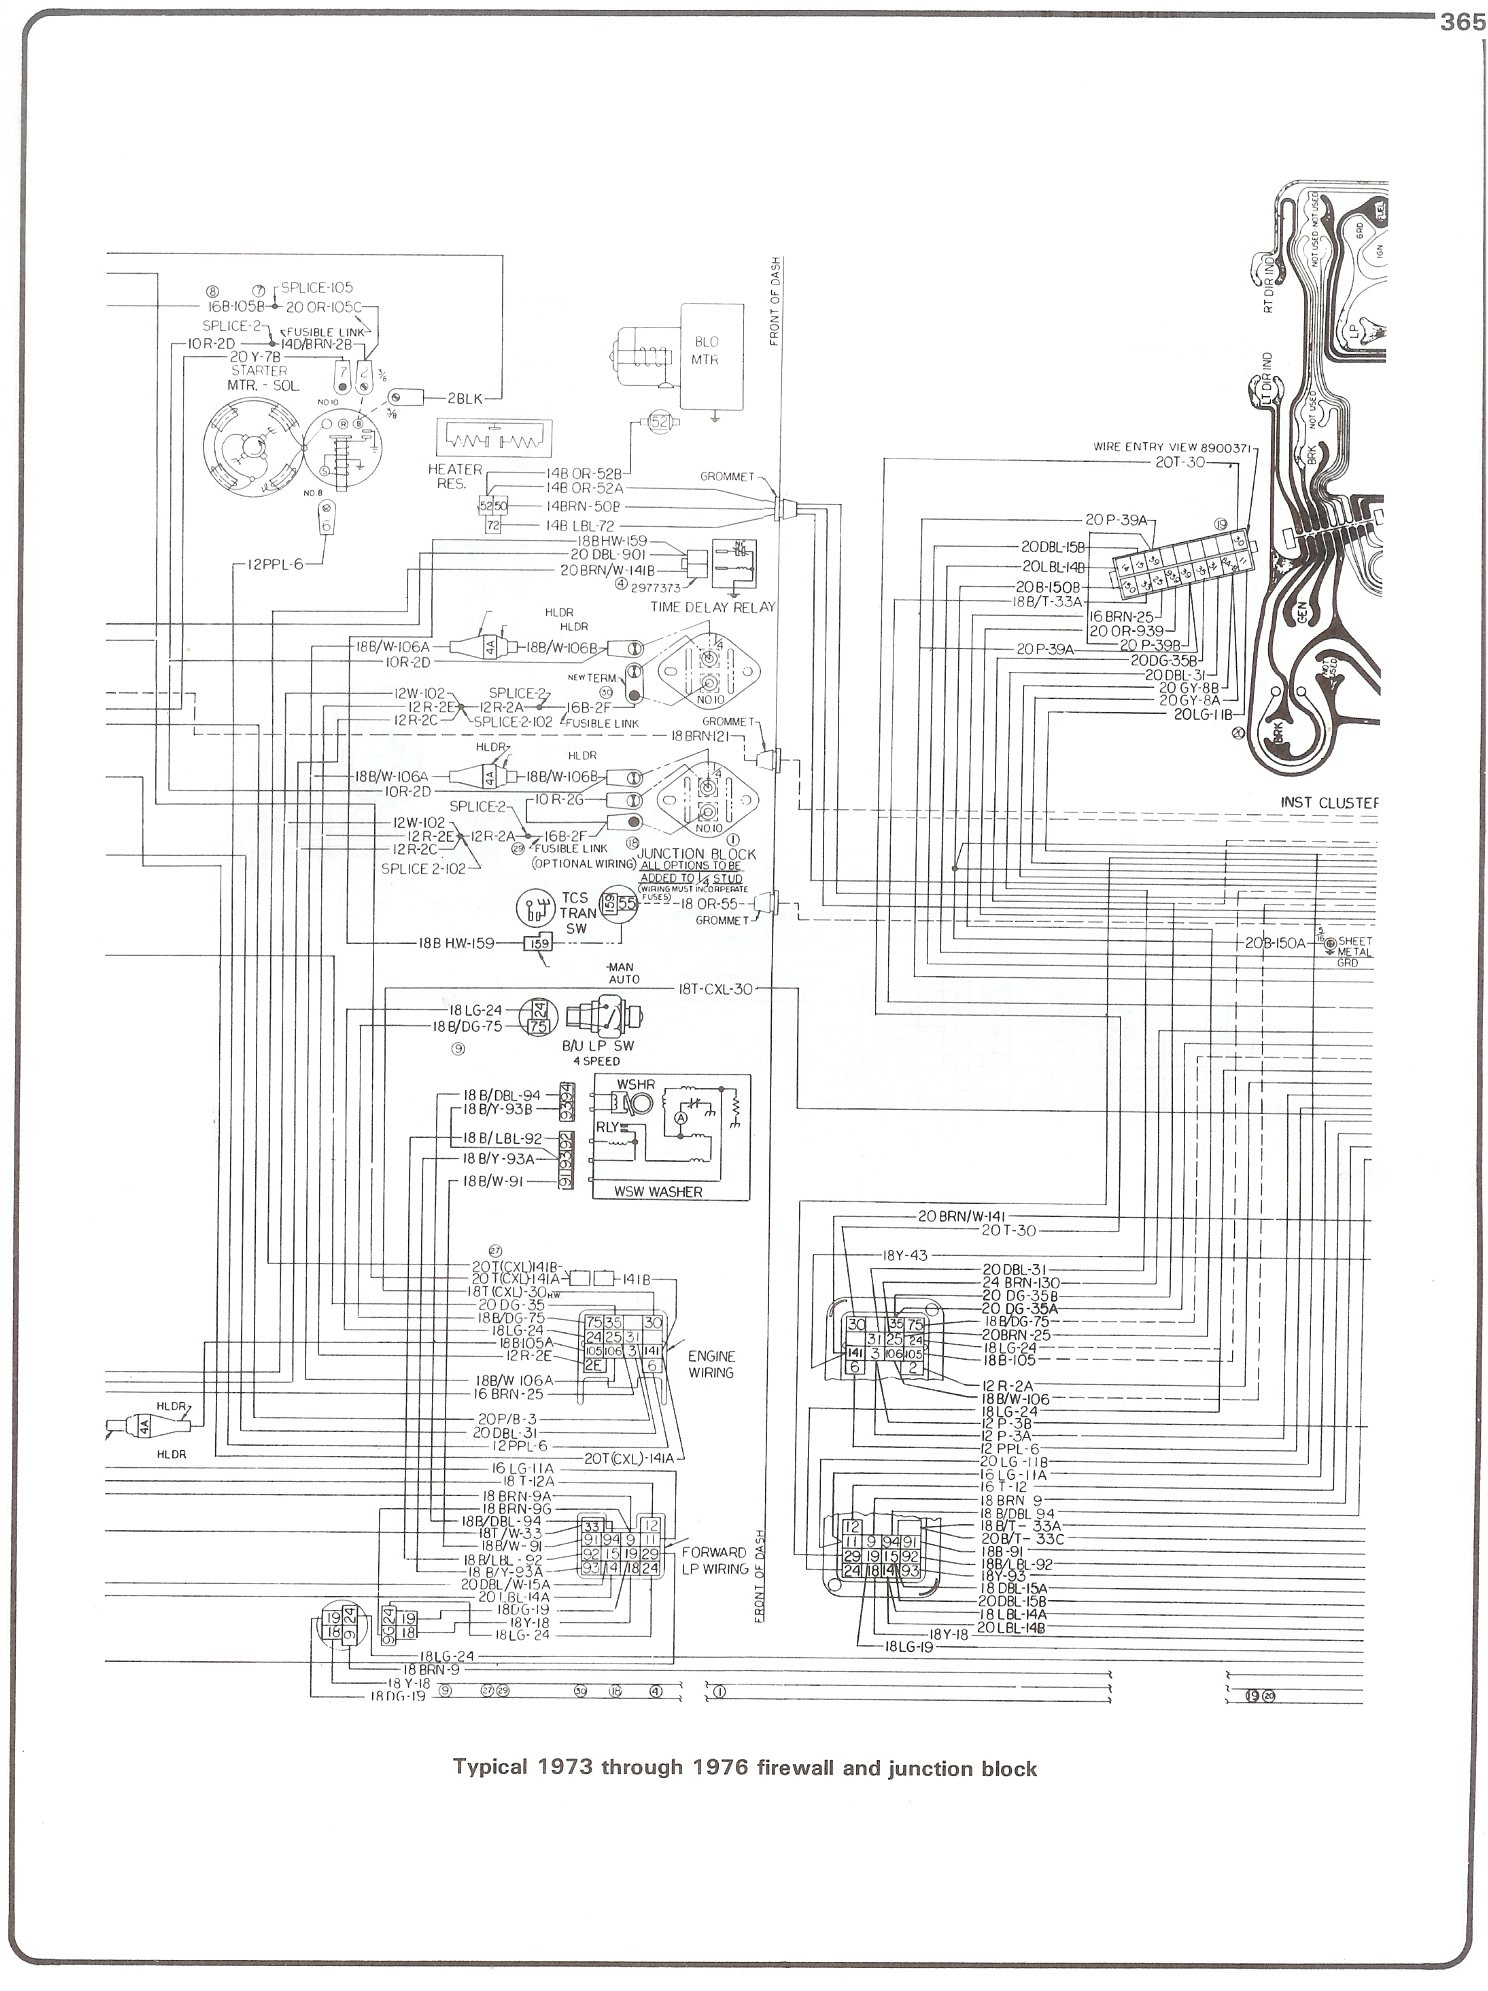 1979 Gmc Truck Wiring Diagram Site Gm Trailer Hitch Complete 73 87 Diagrams Harness